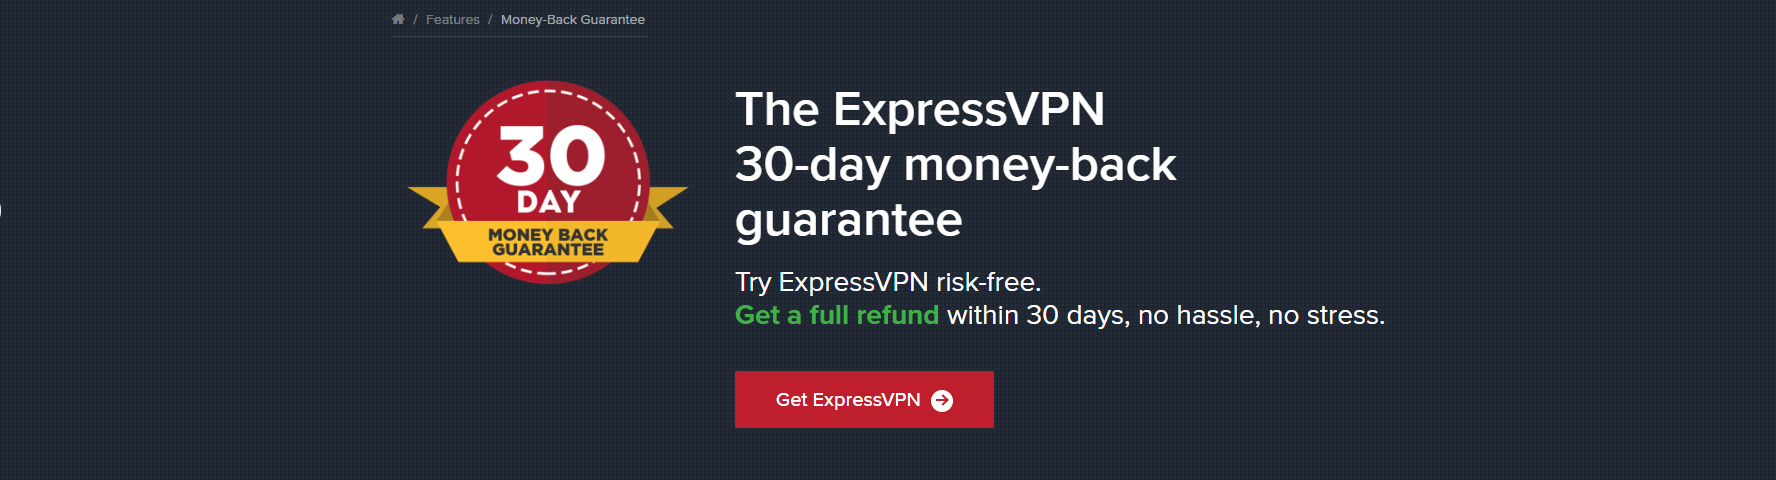 expressvpn moneyback